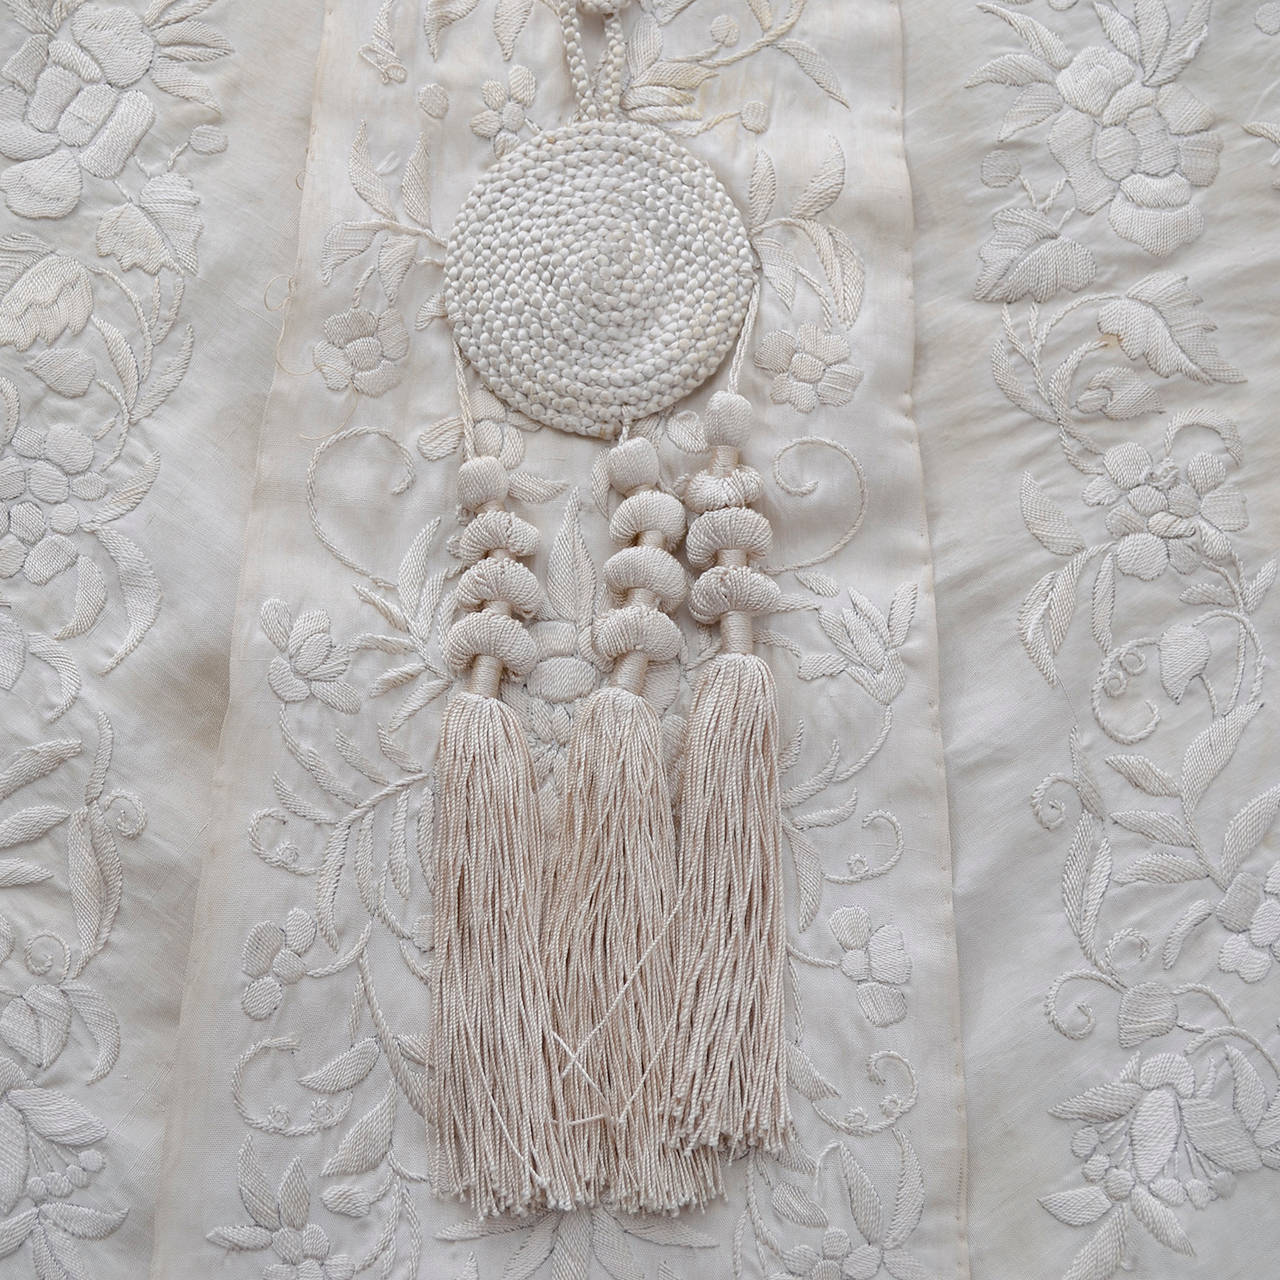 Ivory Edwardian Vintage Shawl Wrap Cape Fringe Antique Silk Embroidery Tassels 3